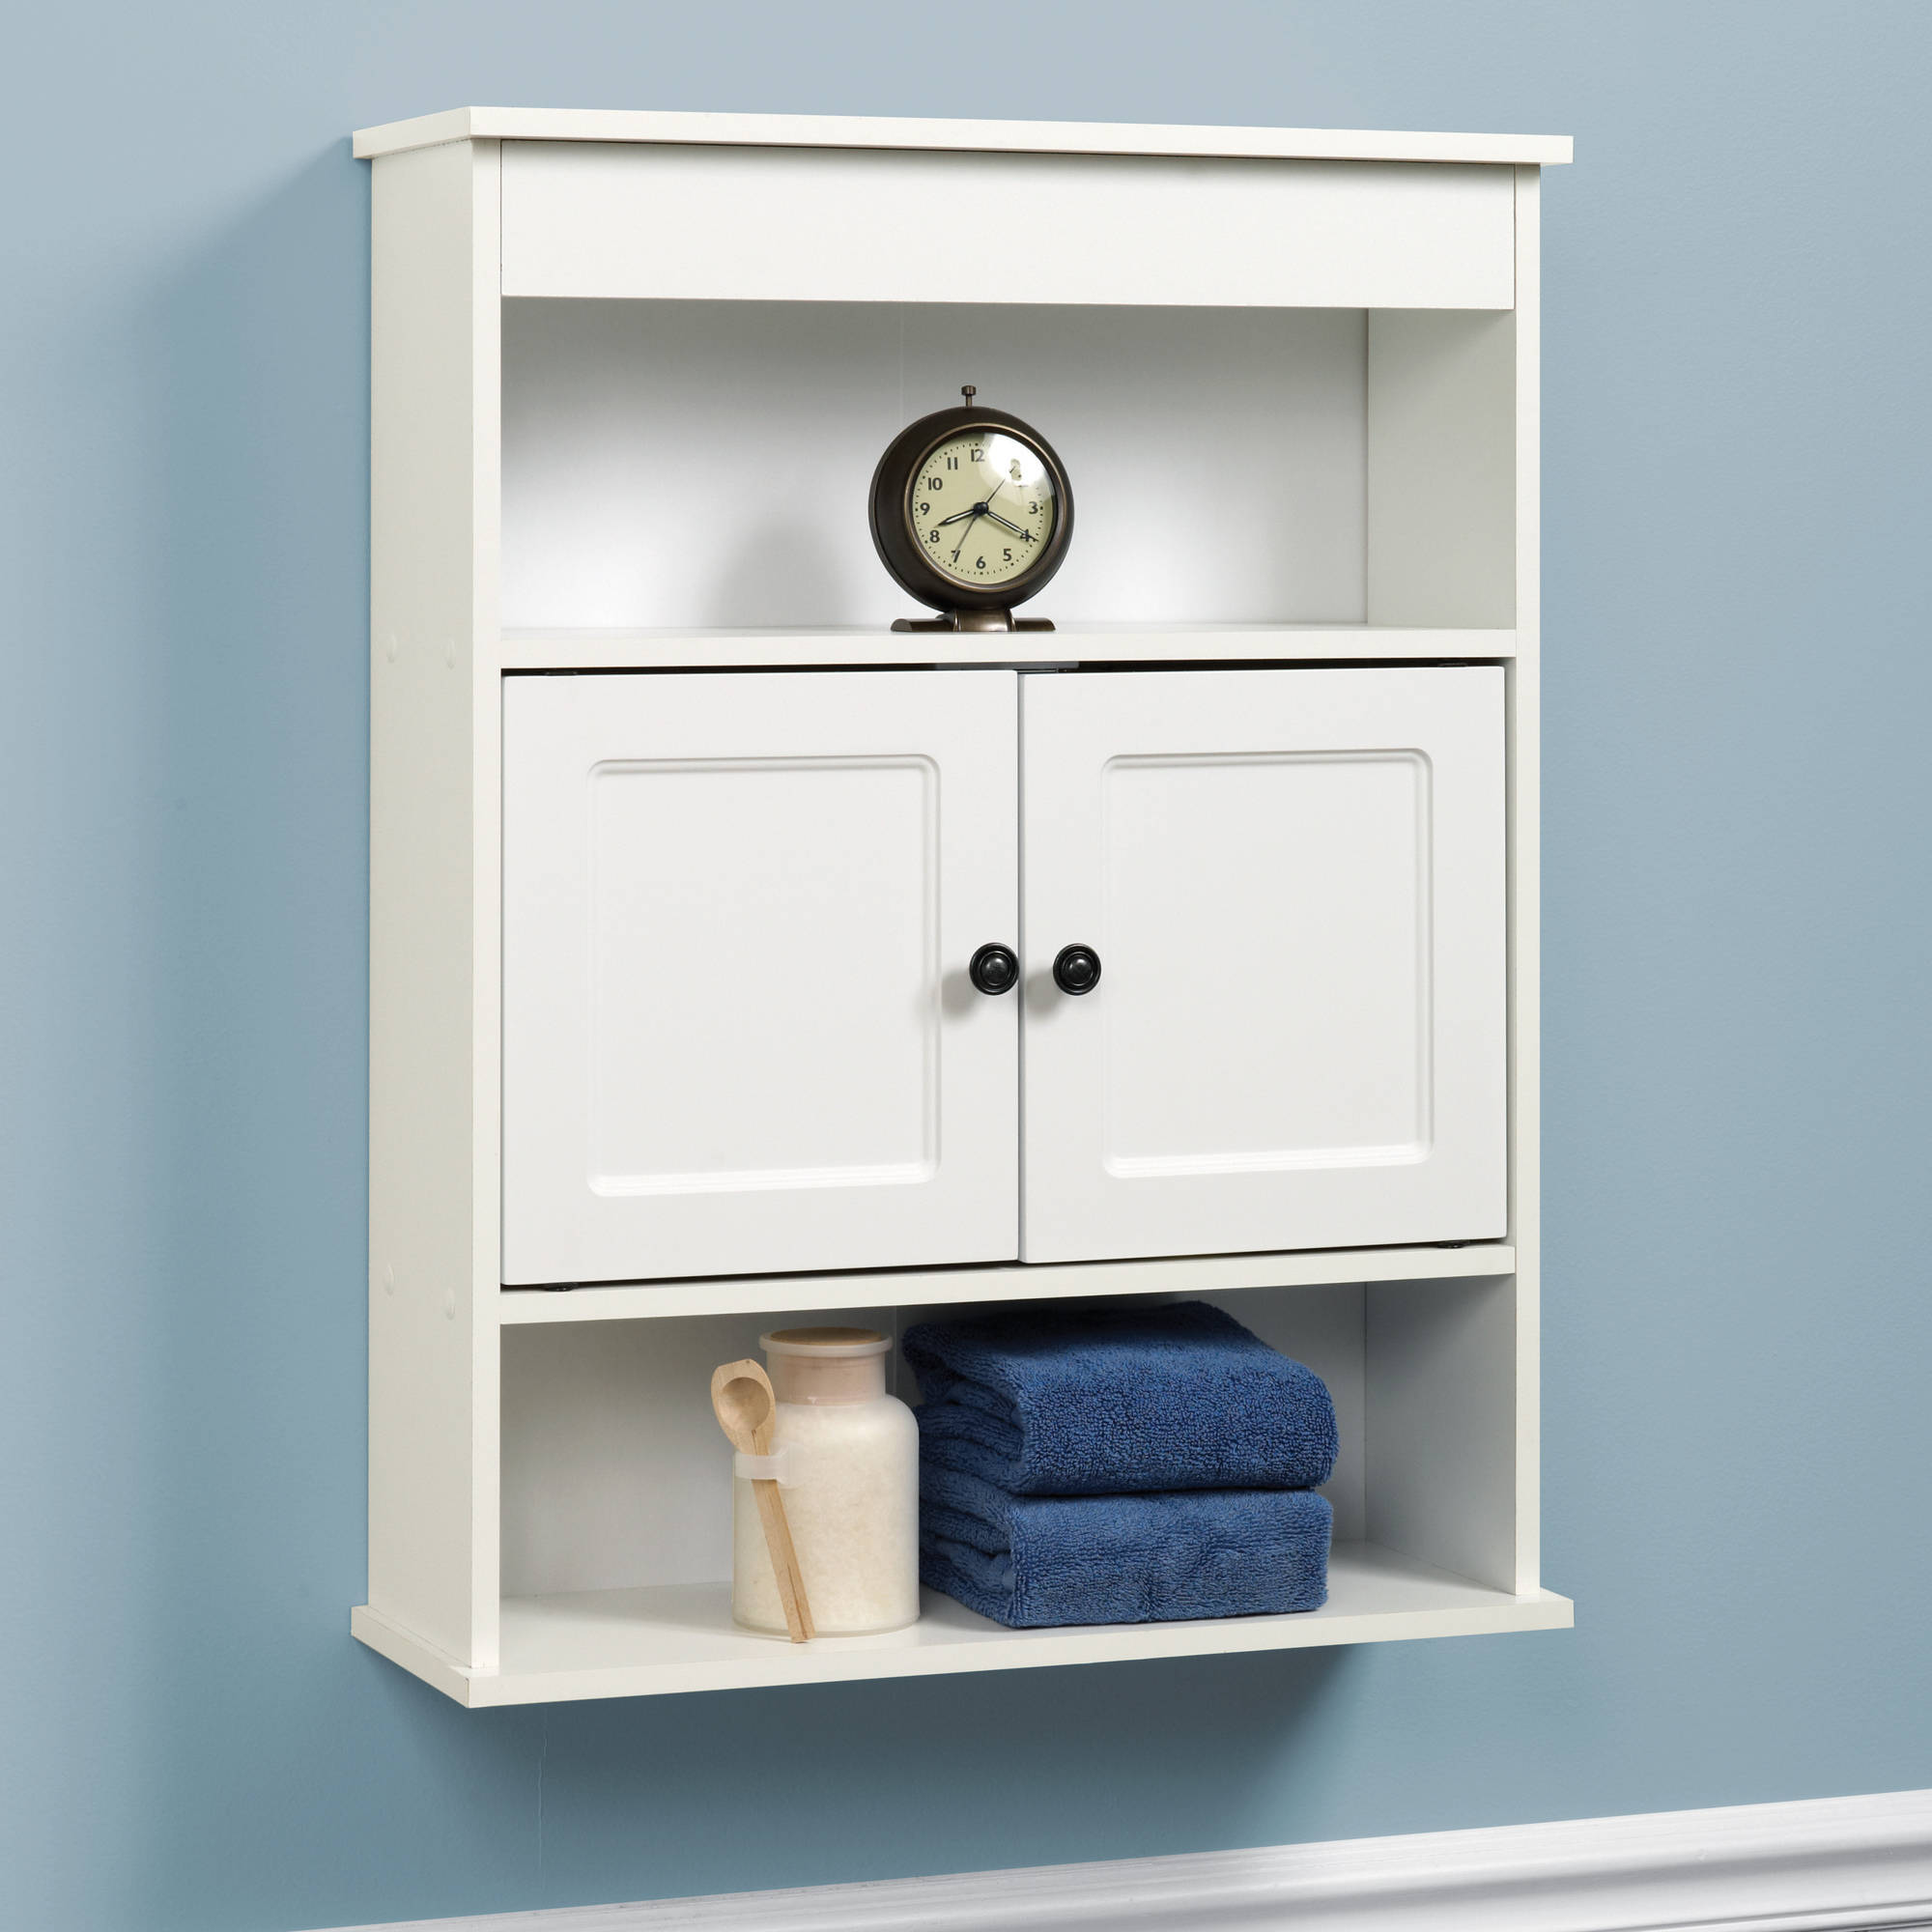 Exceptionnel Chapter Bathroom Wall Cabinet, White